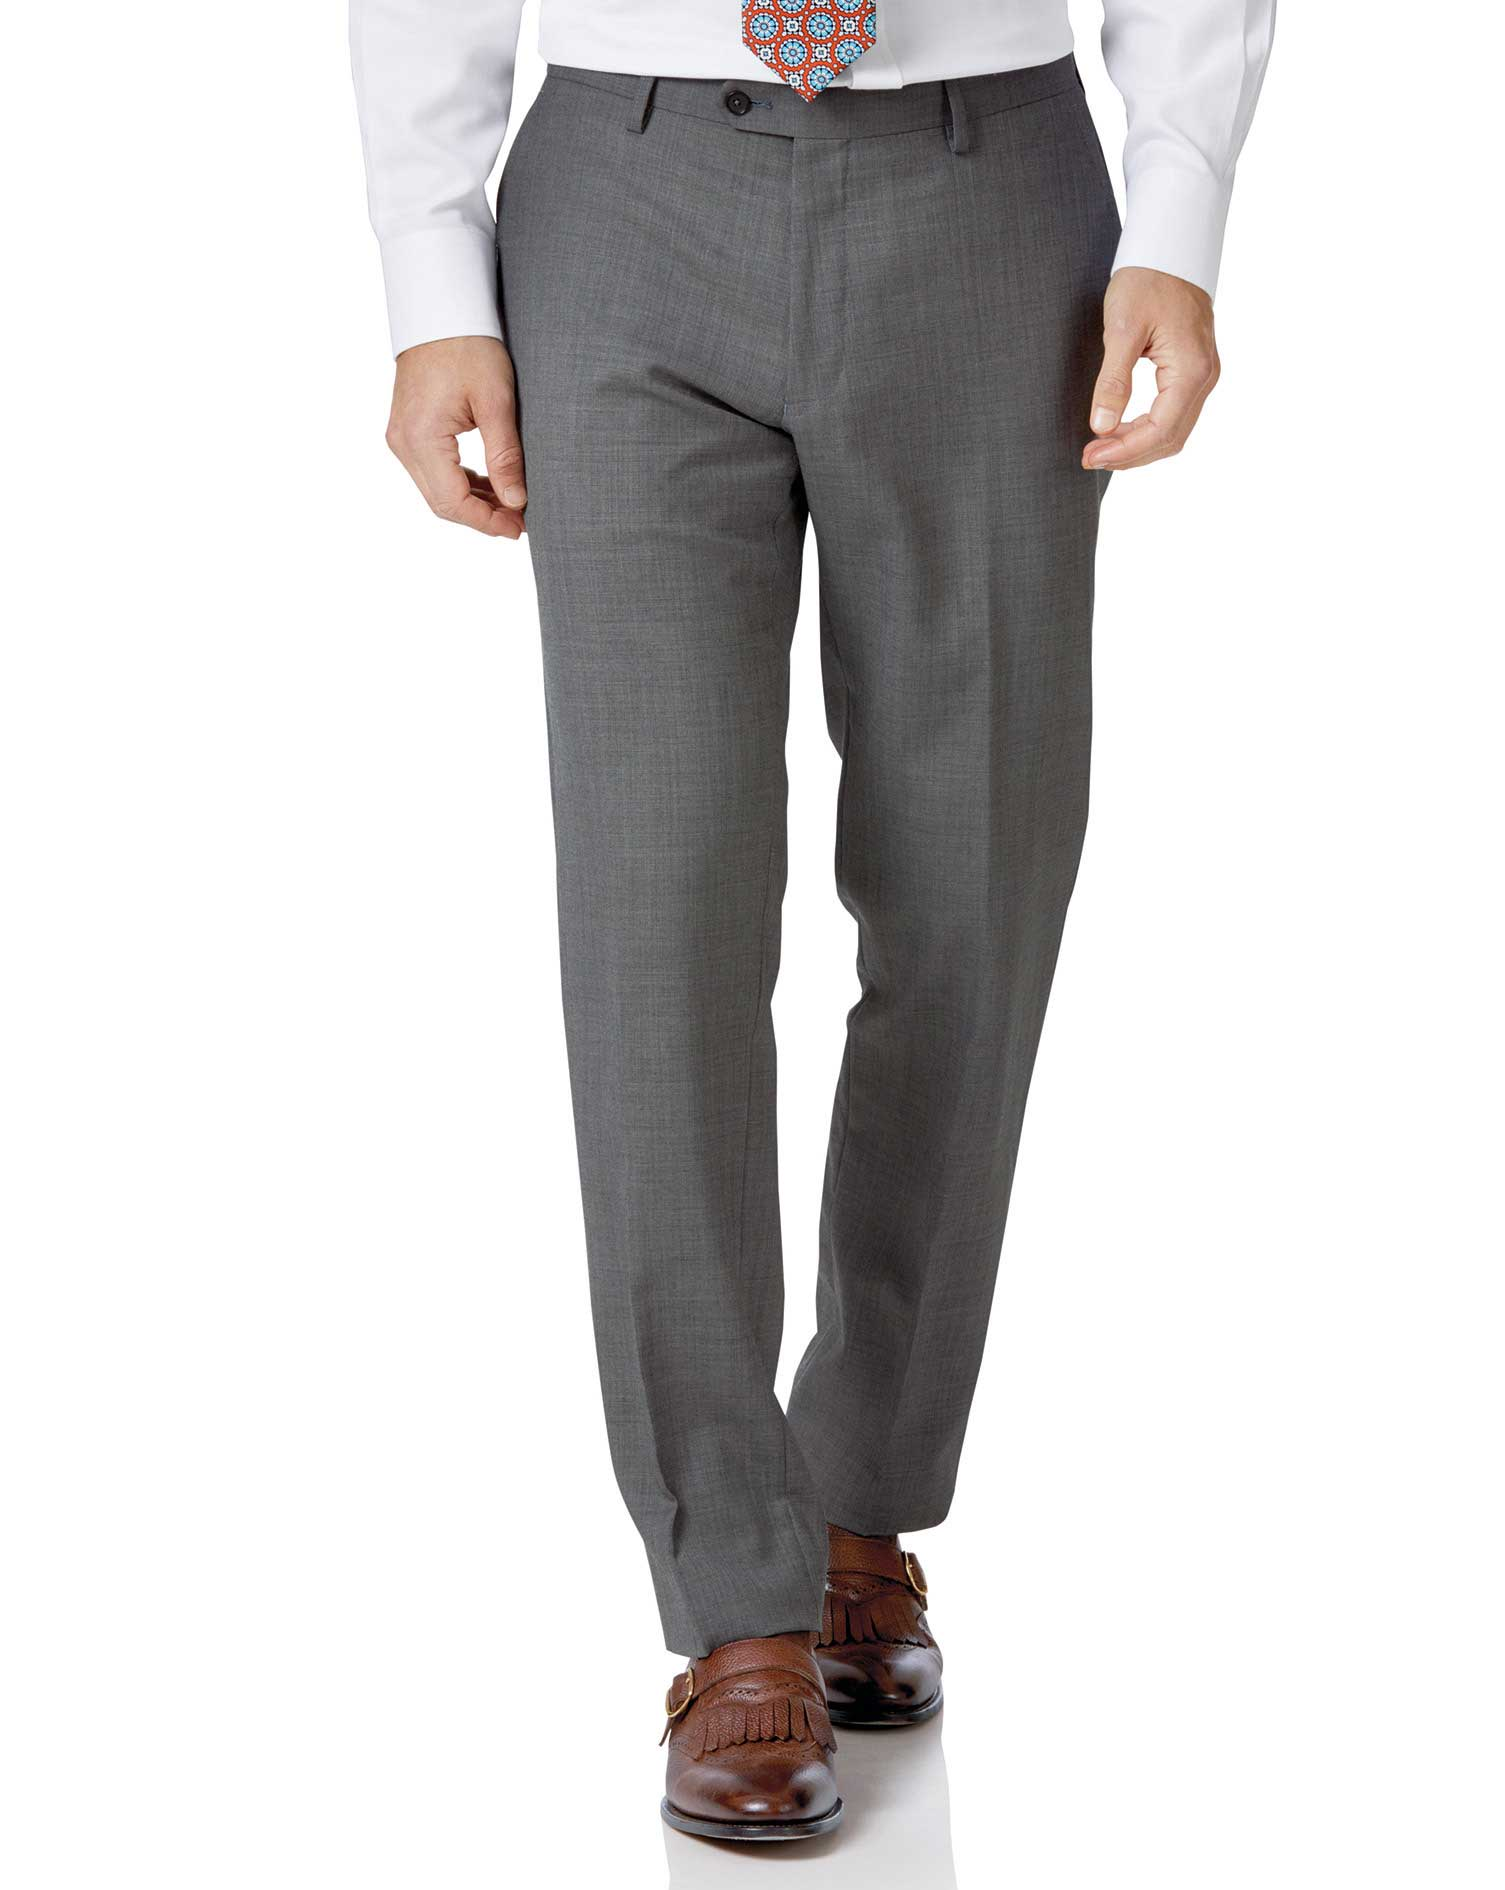 Light Grey Slim Fit Sharkskin Travel Suit Trousers Size W36 L32 by Charles Tyrwhitt